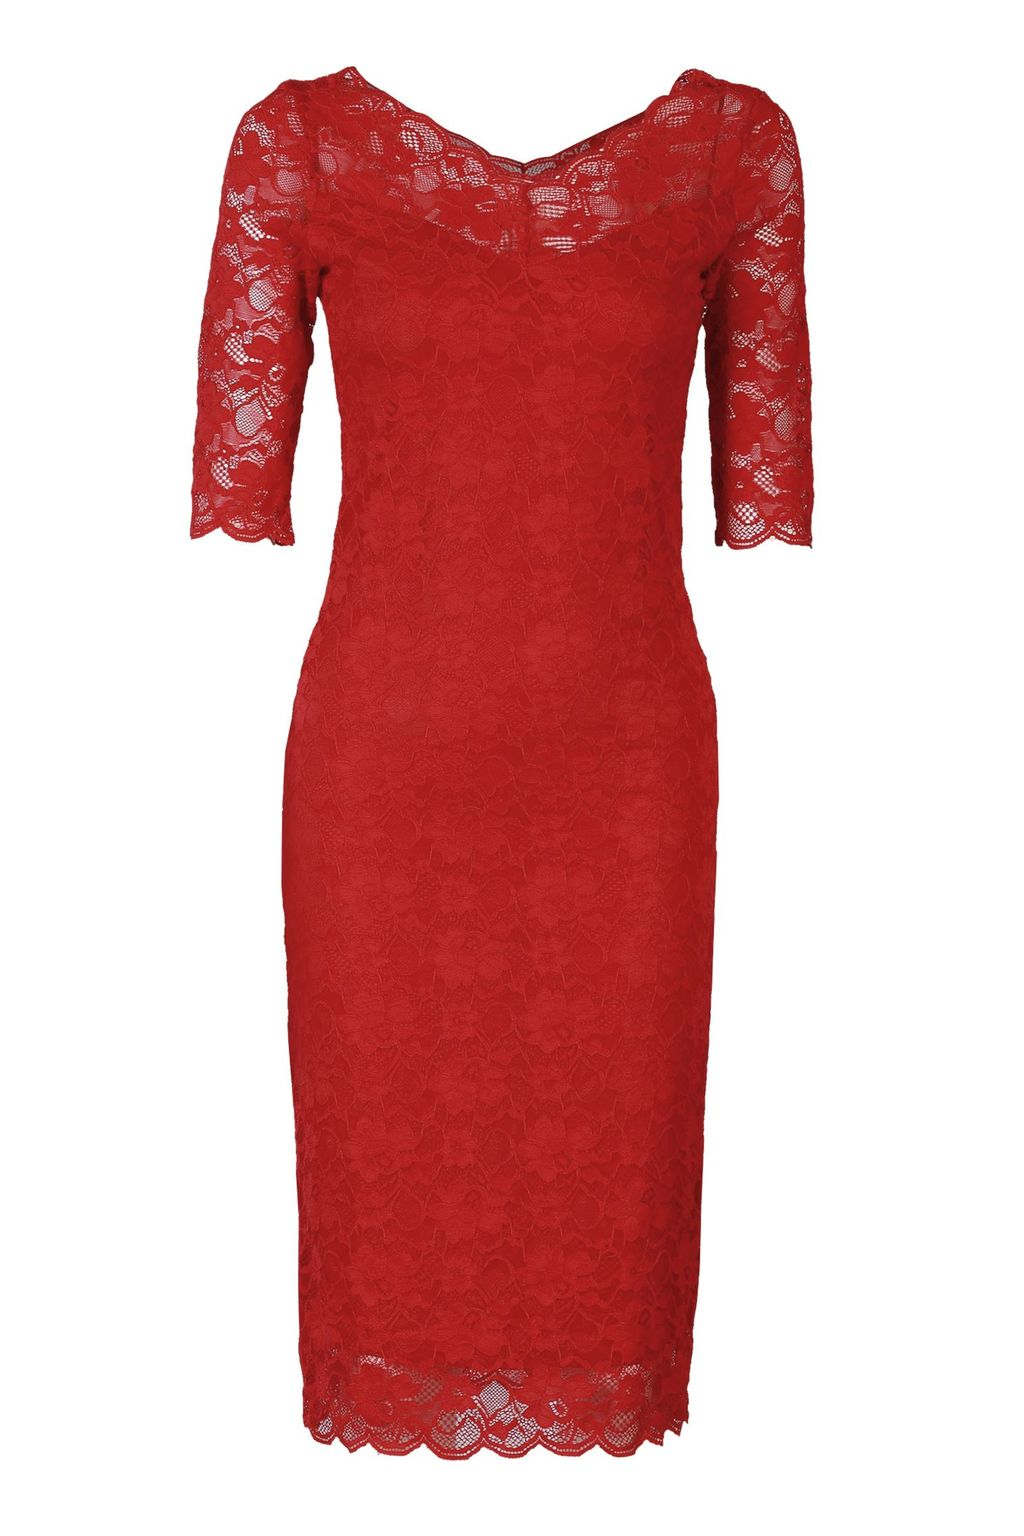 V Neck 3/4 Sleeve Lace Dress, Red - neckline: v-neck; fit: tight; style: bodycon; hip detail: draws attention to hips; predominant colour: true red; occasions: evening; length: on the knee; fibres: polyester/polyamide - 100%; sleeve length: half sleeve; sleeve style: standard; texture group: lace; pattern type: fabric; pattern size: standard; pattern: patterned/print; season: a/w 2015; wardrobe: event